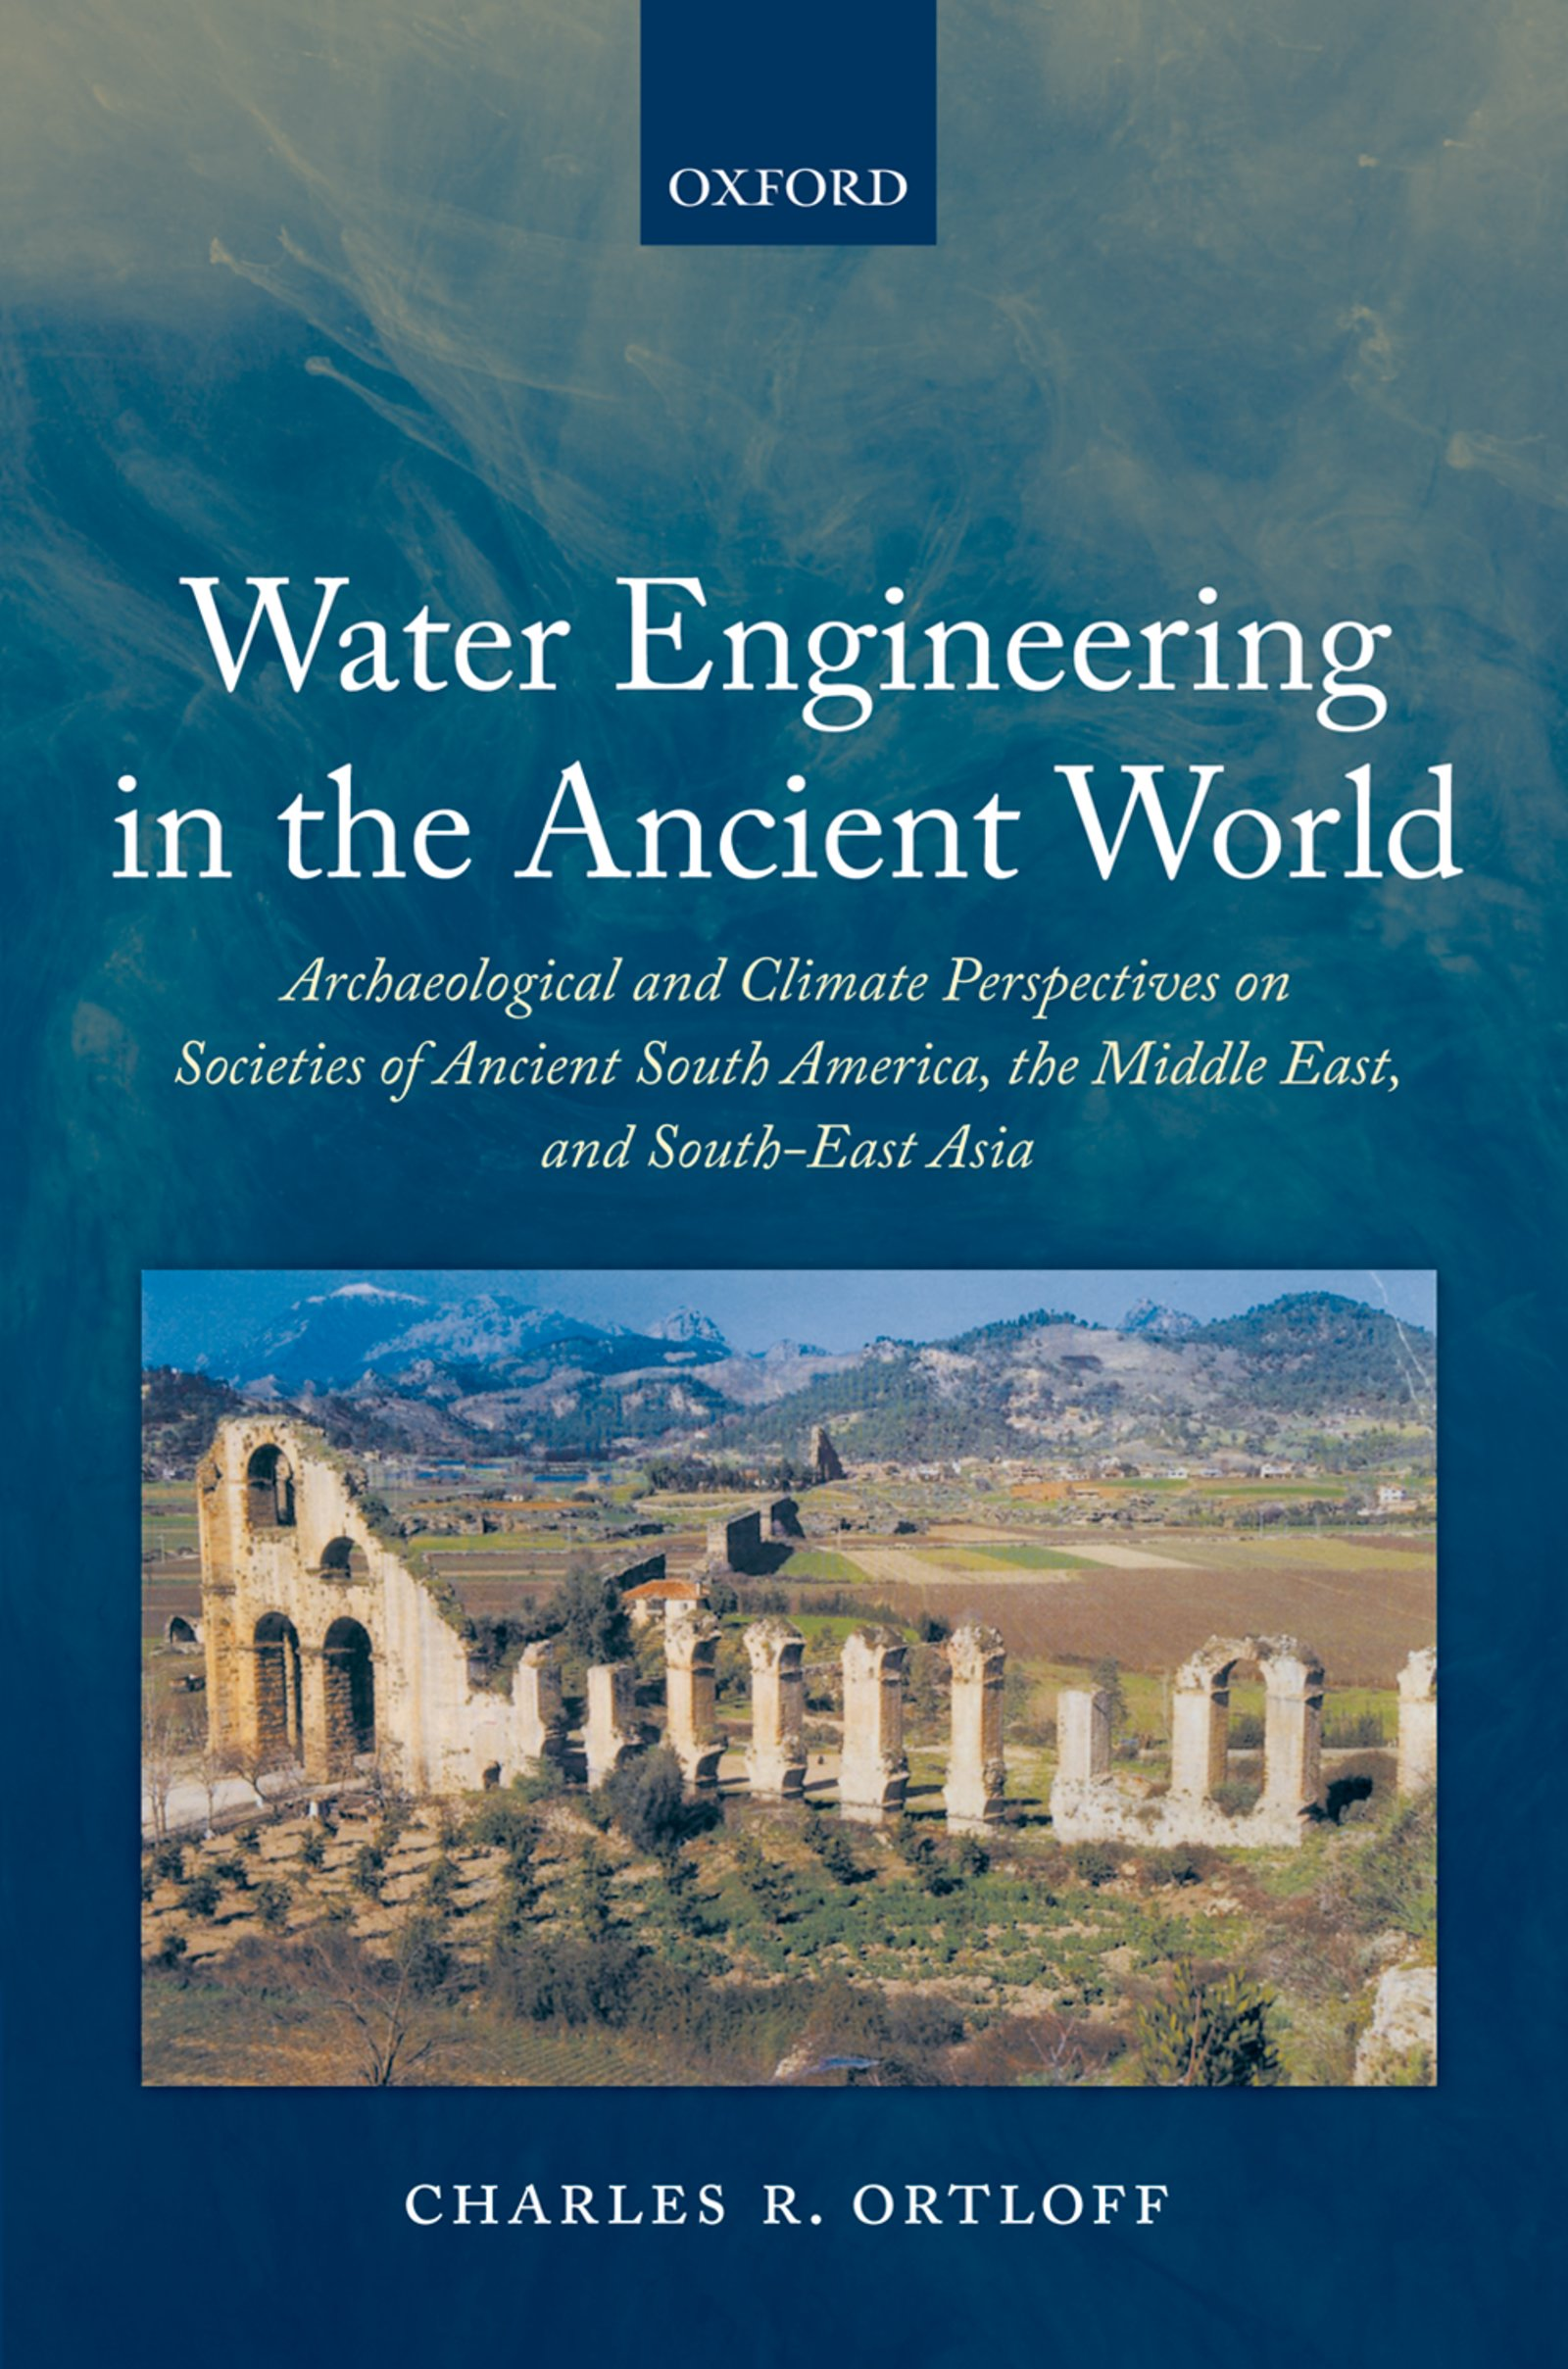 Water Engineering in the Ancient WorldArchaeological and Climate Perspectives on Societies of Ancient South America, the Middle East, and South-East Asia